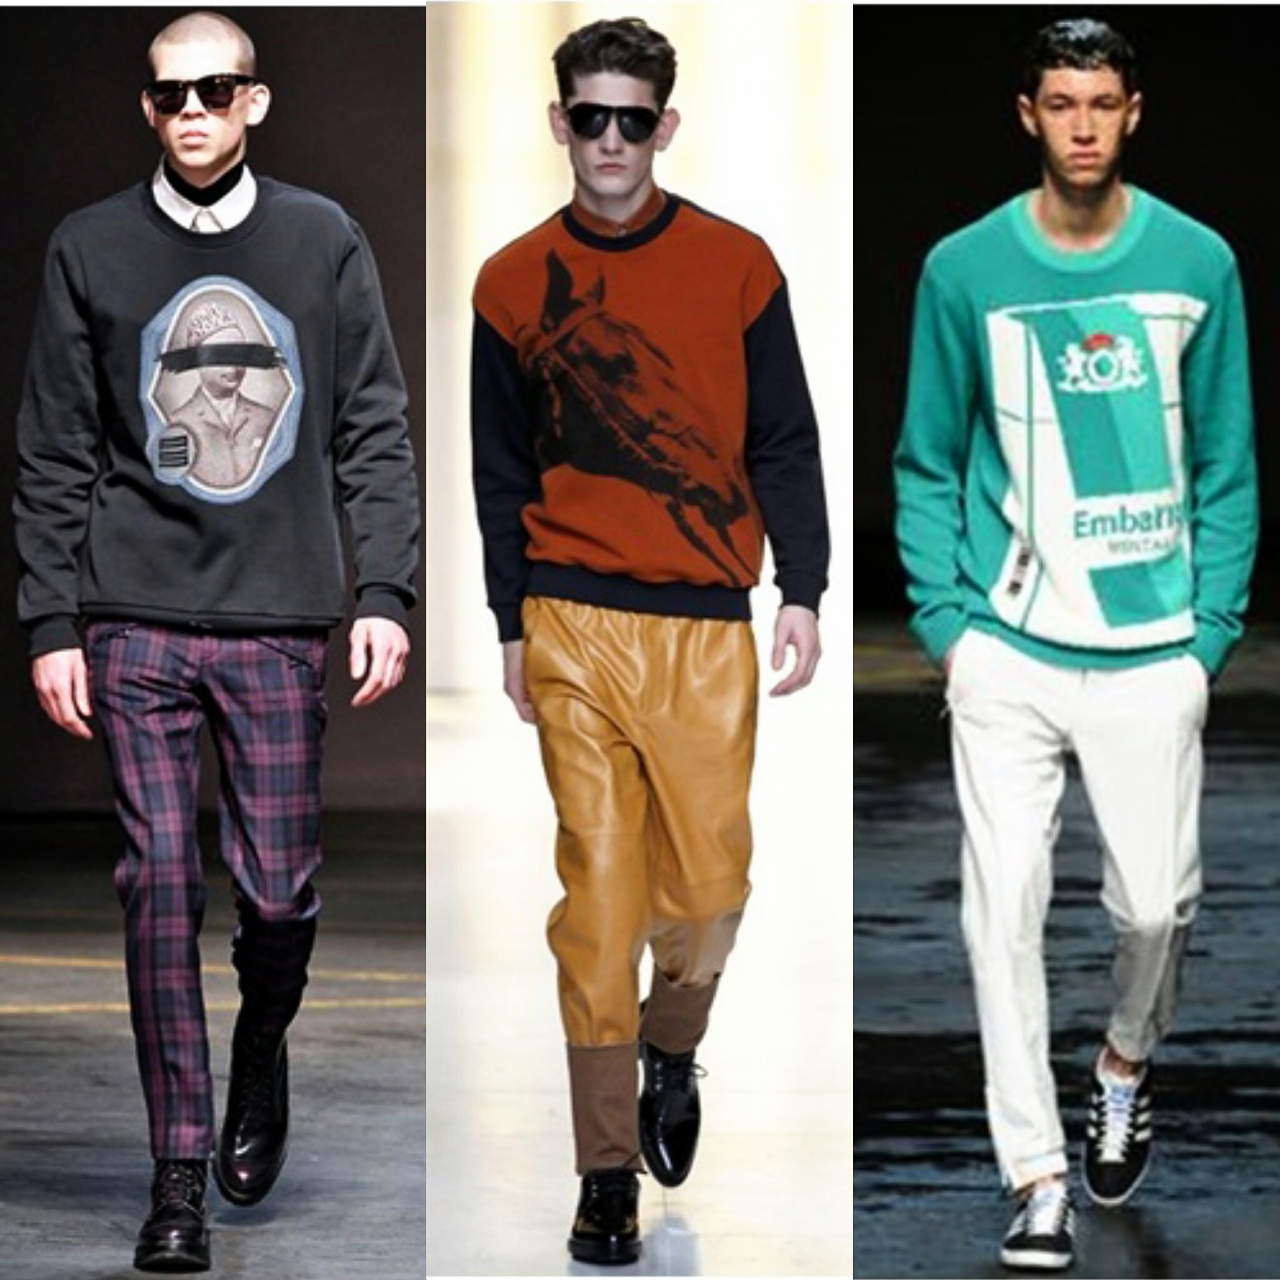 Men's winter fashion tips: how to wear knitted cardigan or a sweater